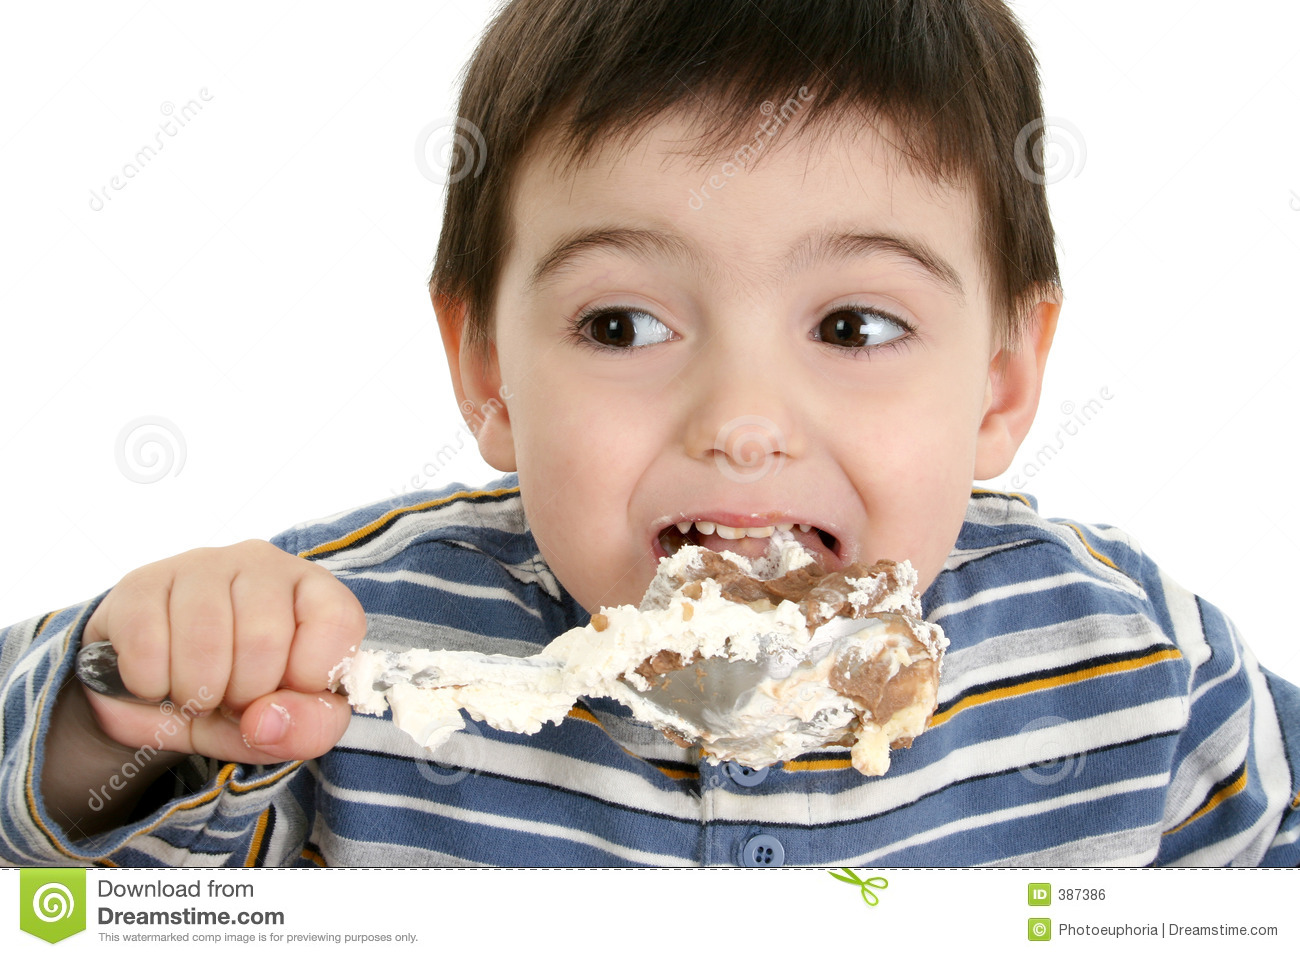 Kids Eating Objects